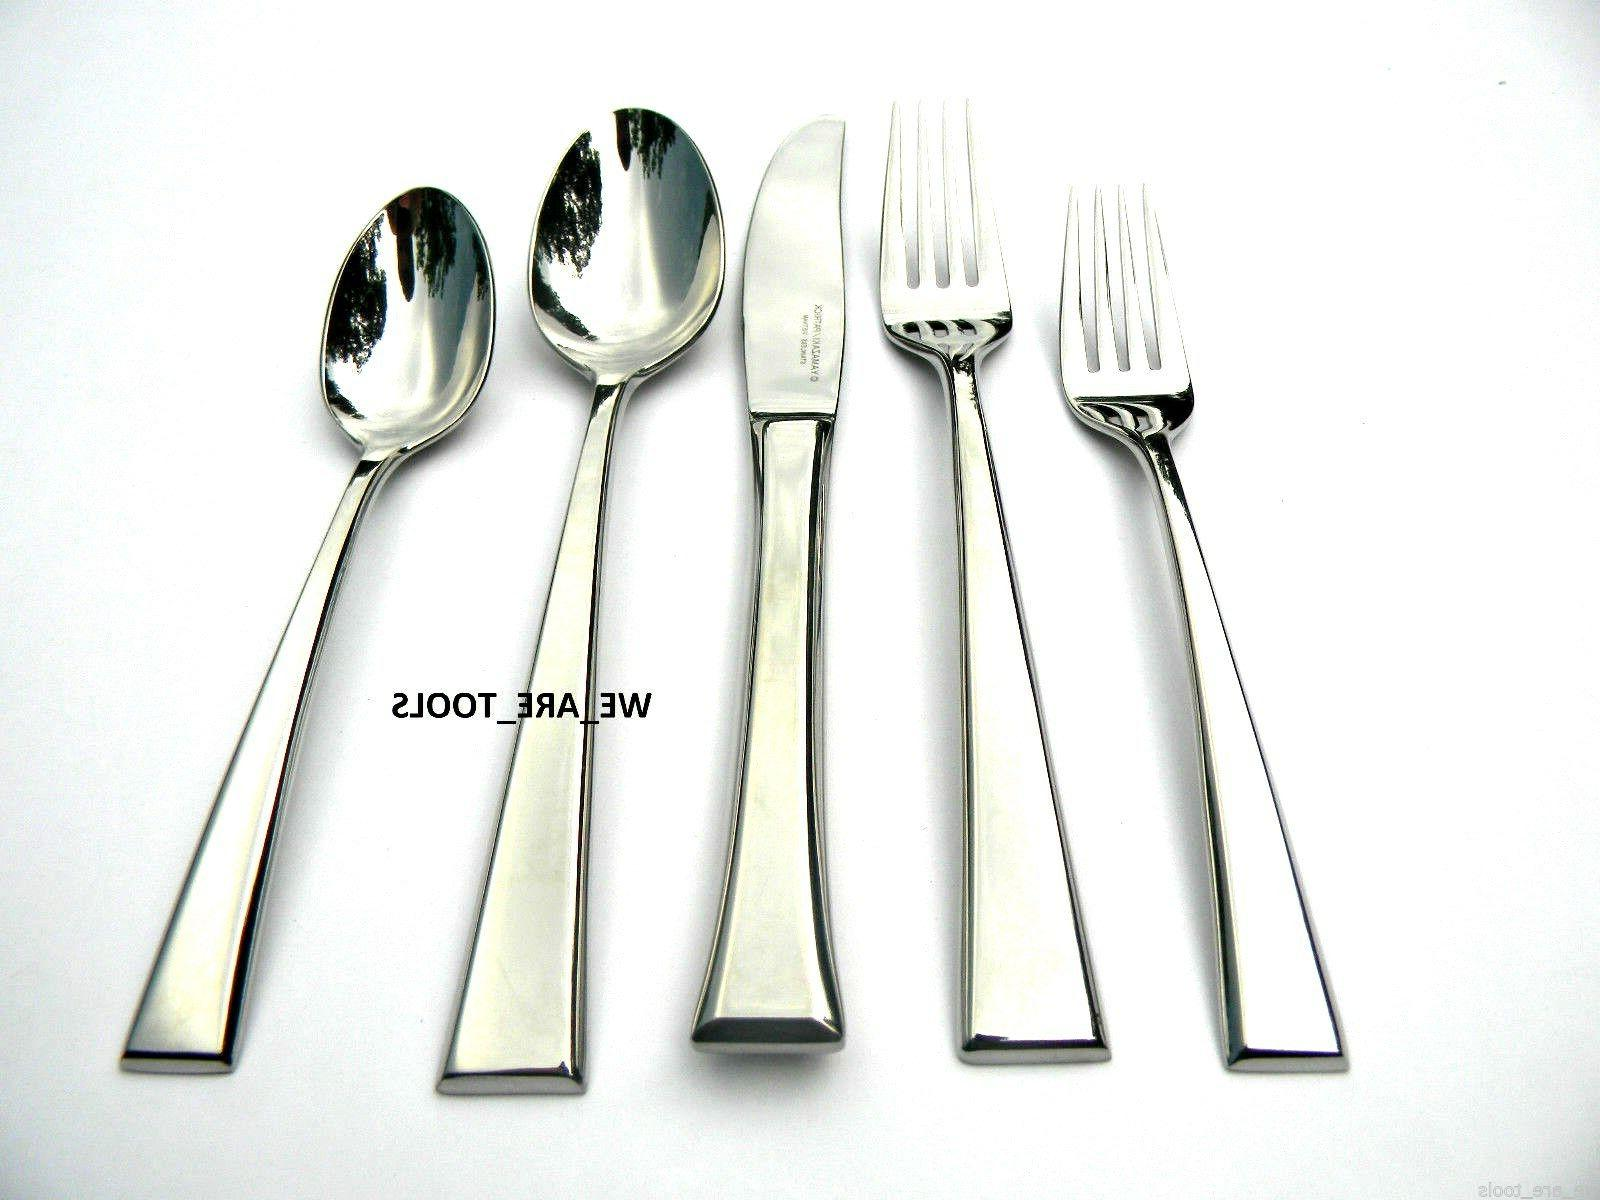 epoch stainless steel flatware place